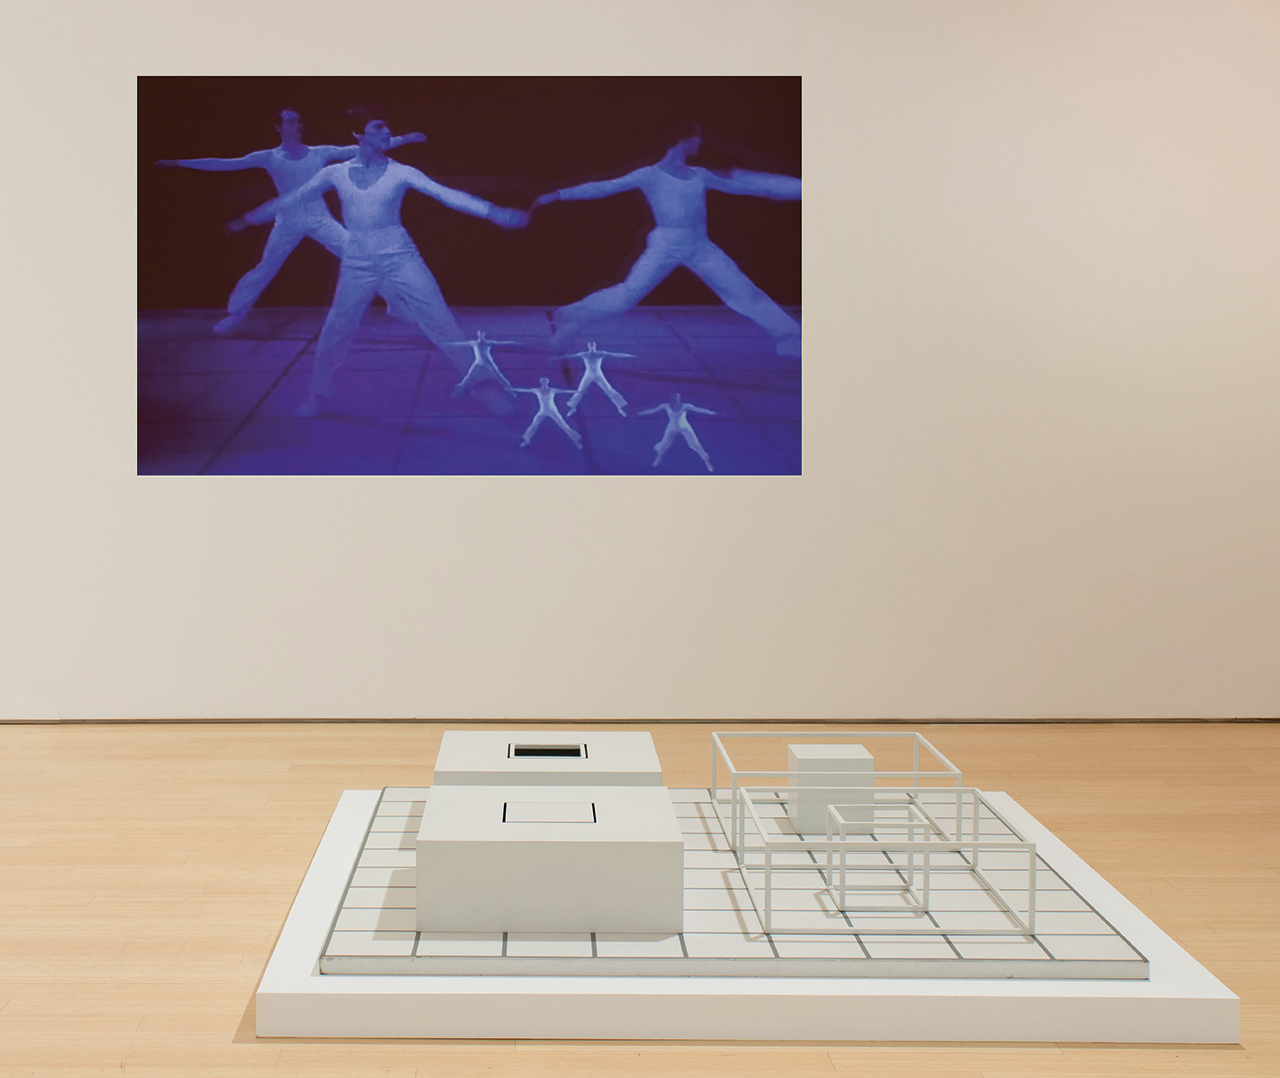 """Lucinda Childs's 'Dance' (1979) and Sol LeWitt's """"Serial Project ABCD 5"""" installed at Loretta Howard Gallery (all images courtesy Loretta Howard Gallery unless otherwise noted)"""